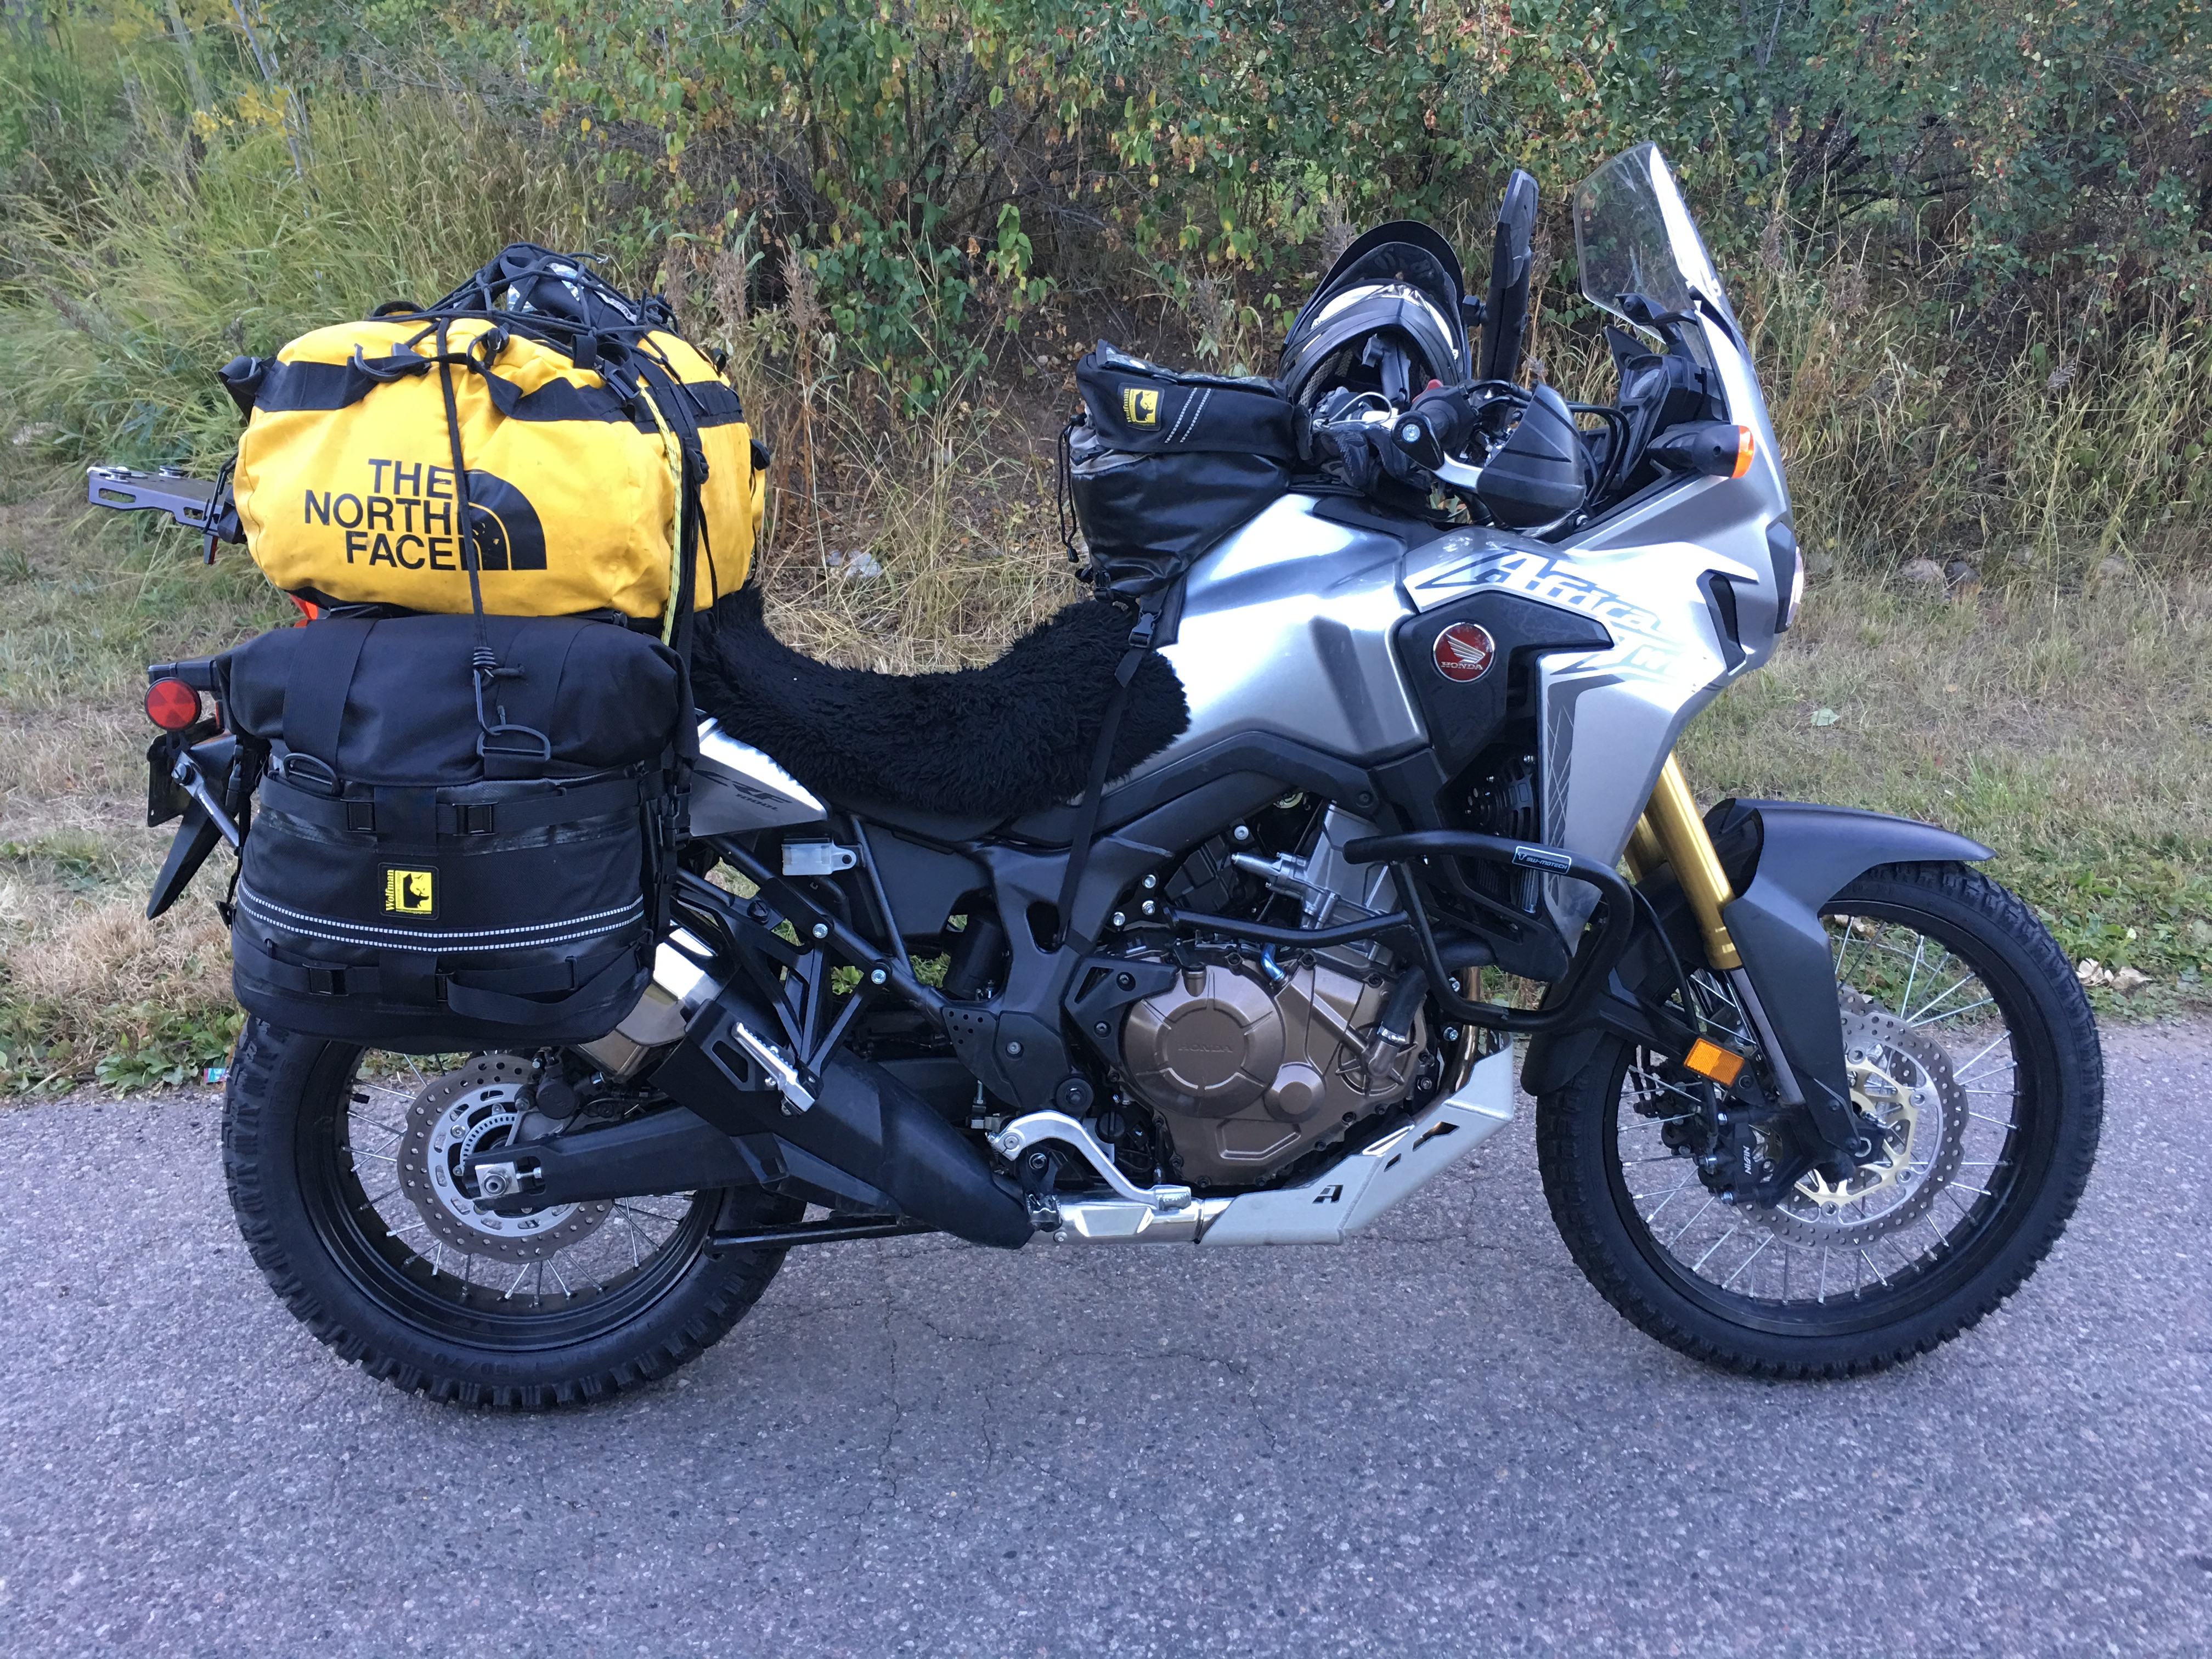 The Honda Africa Twin I Hired In Boulder, Colorado